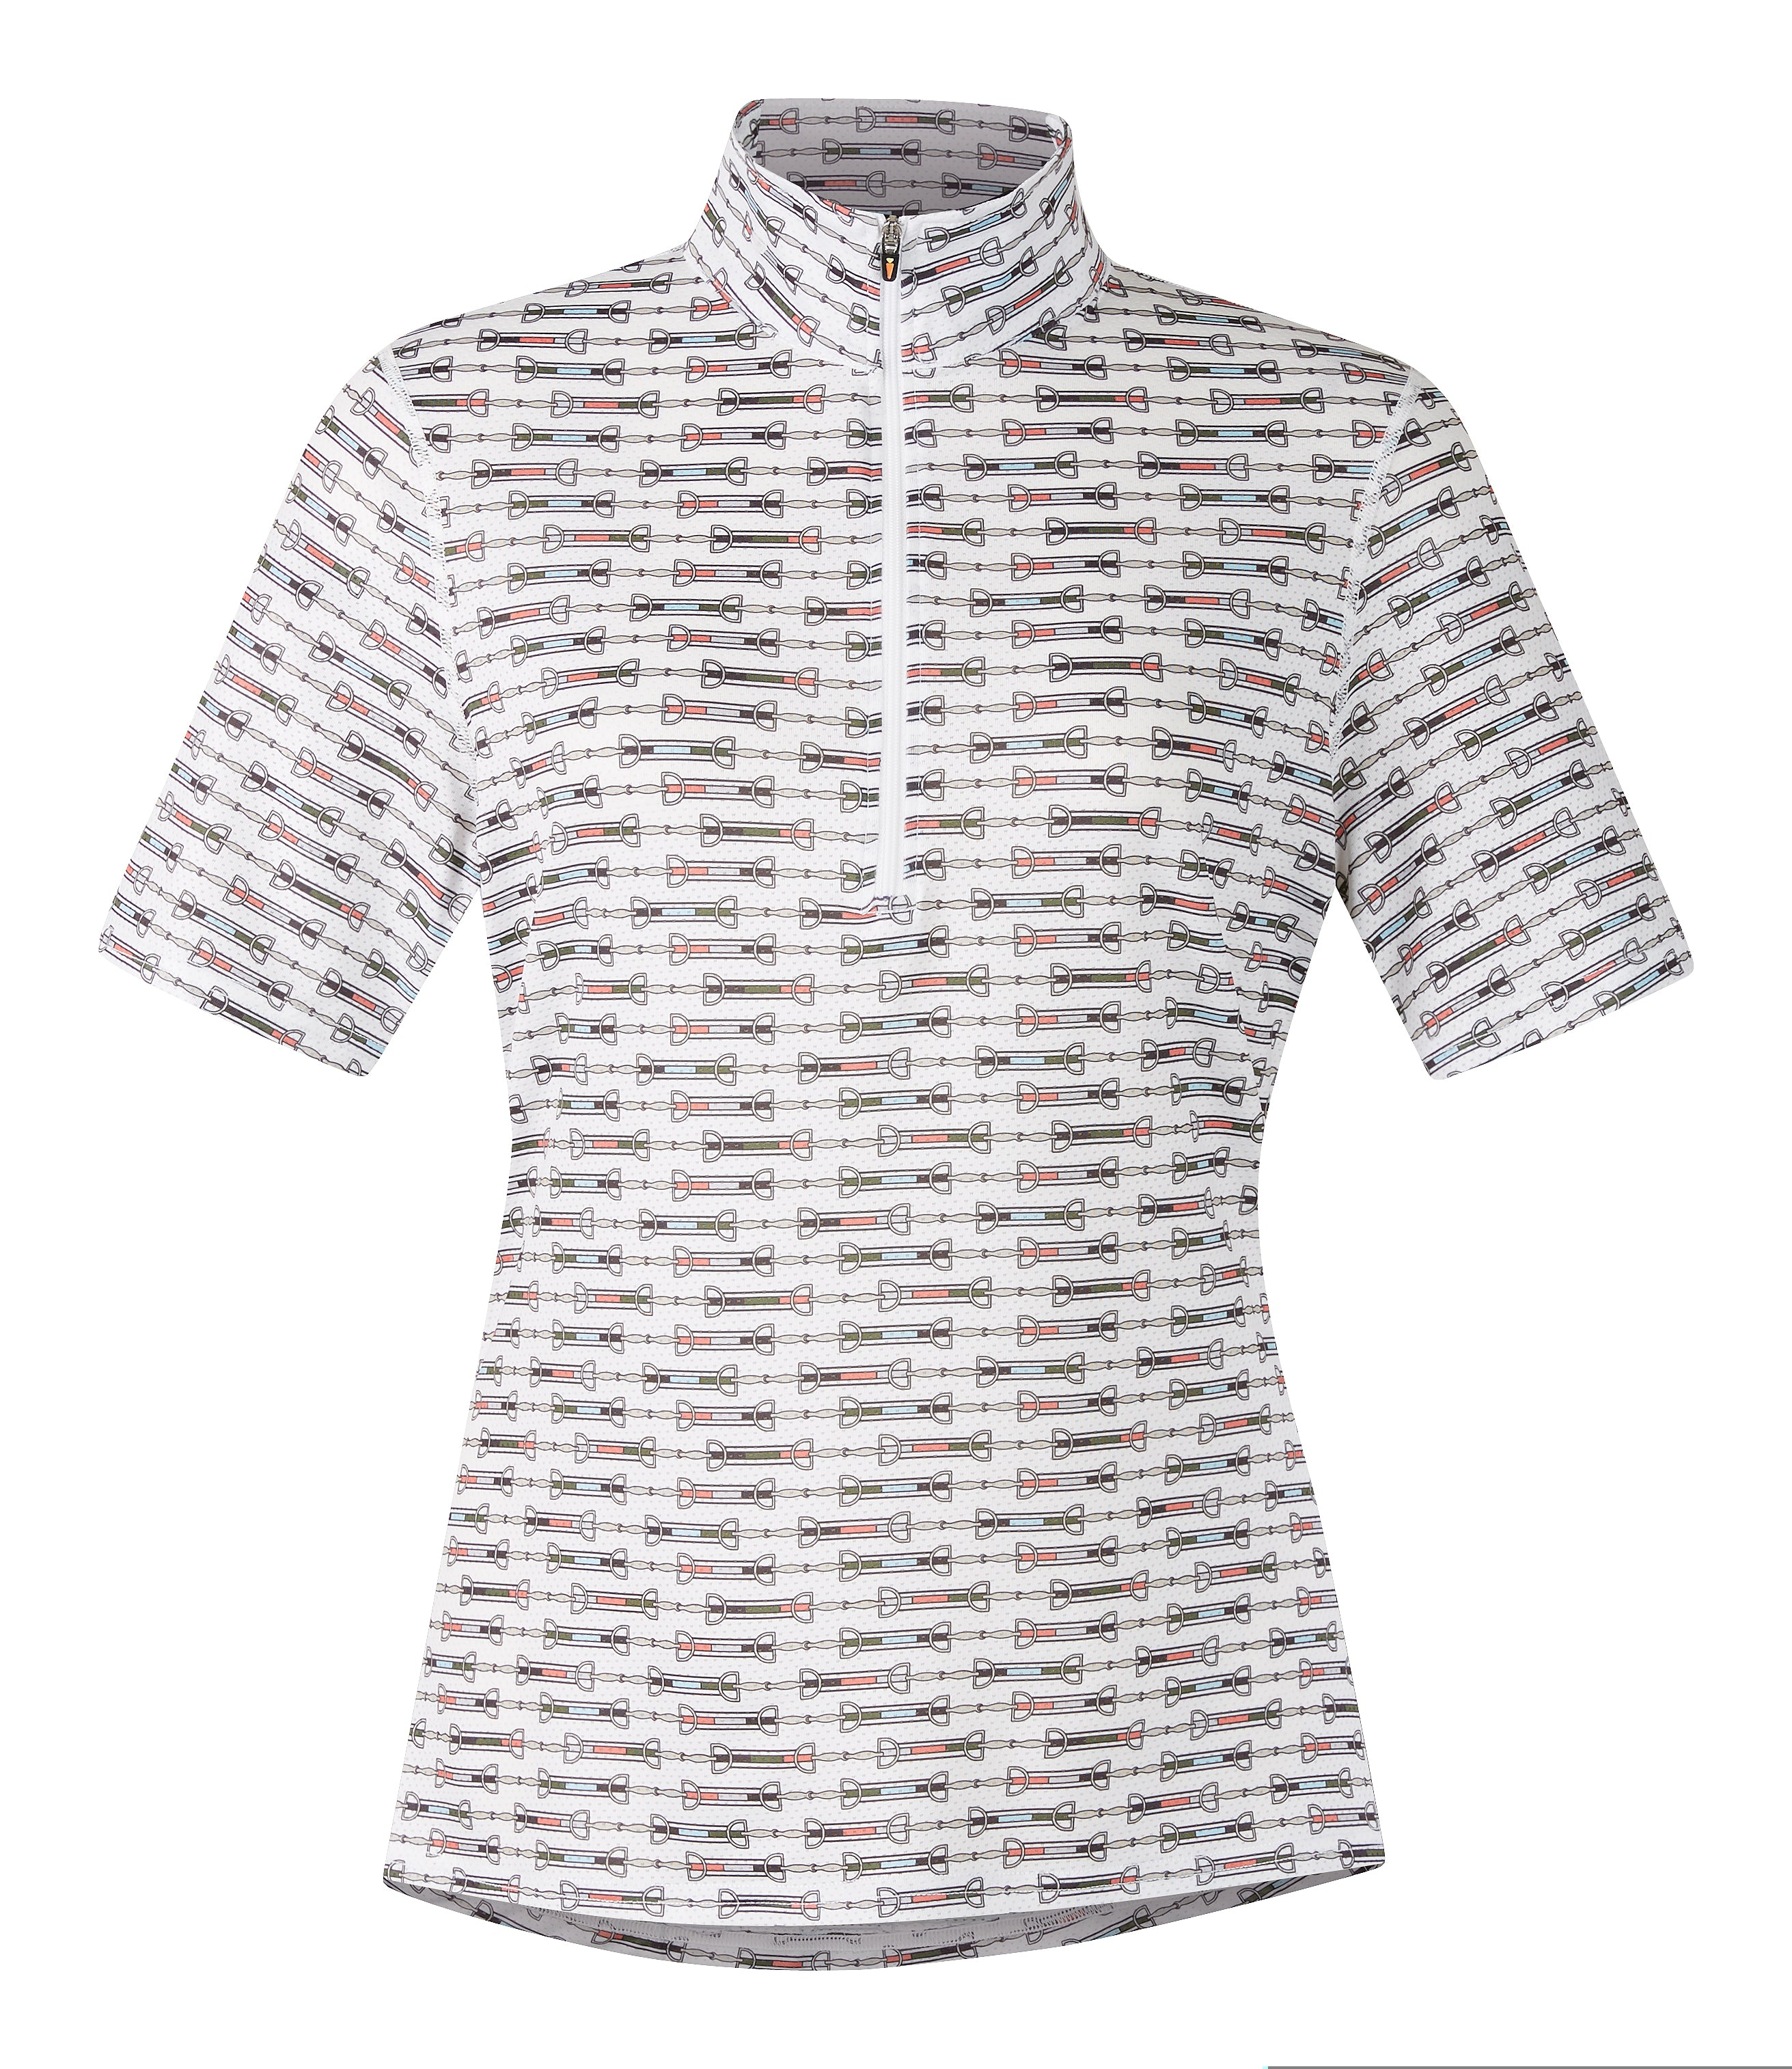 Kerrits Ice Fil Shortsleeve Print Shirt - SALE - North Shore Saddlery